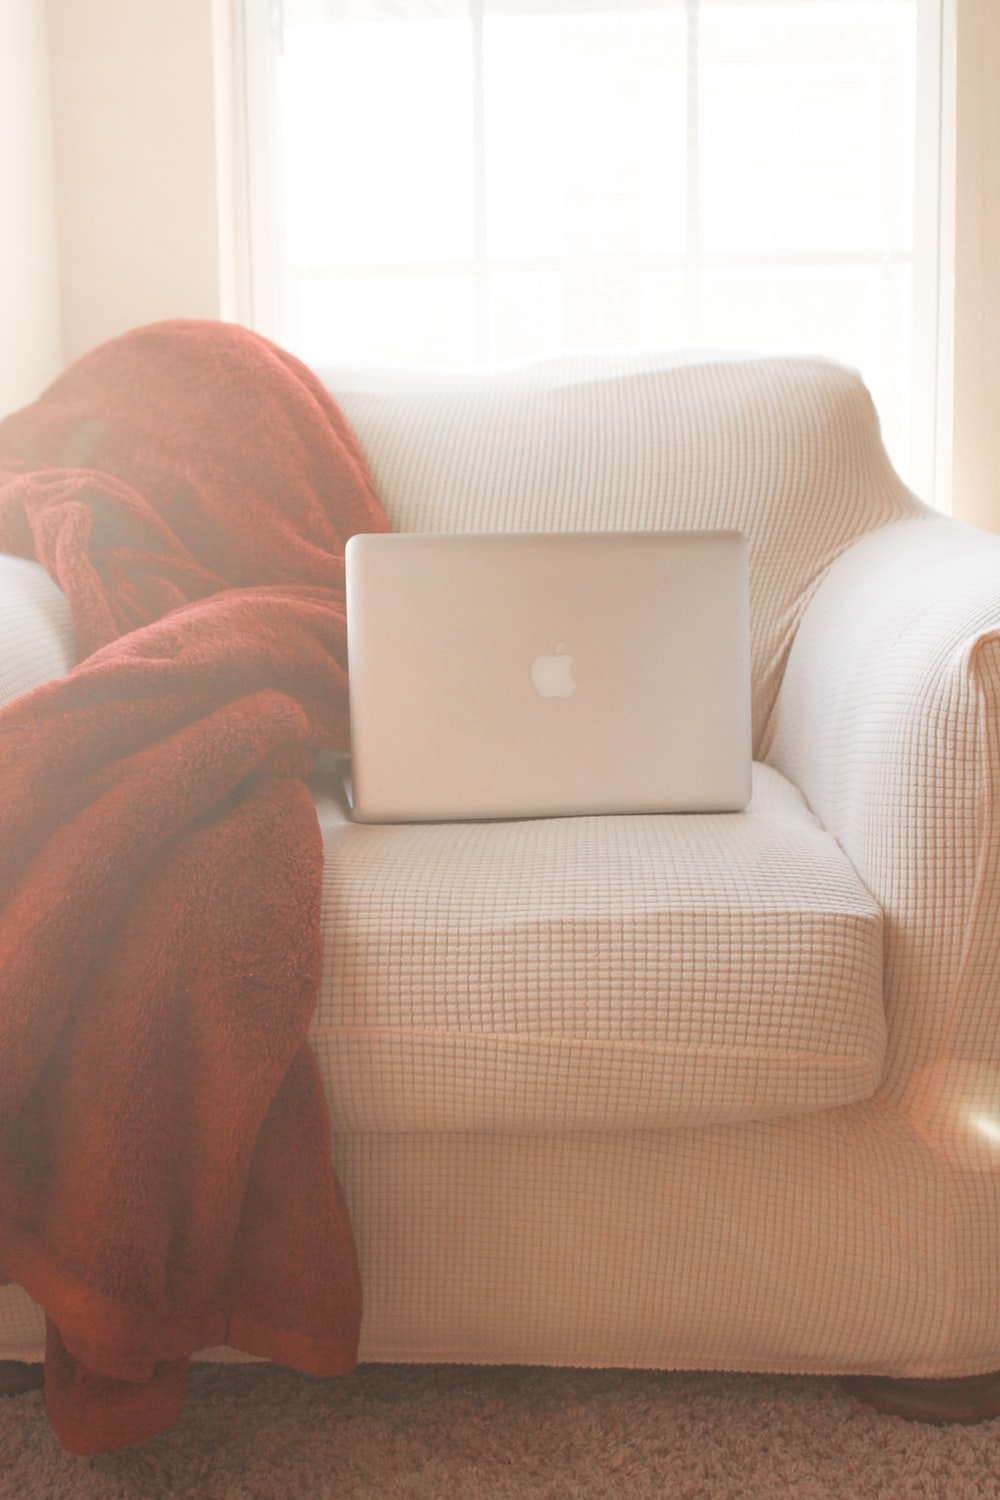 silver macbook on brown textile